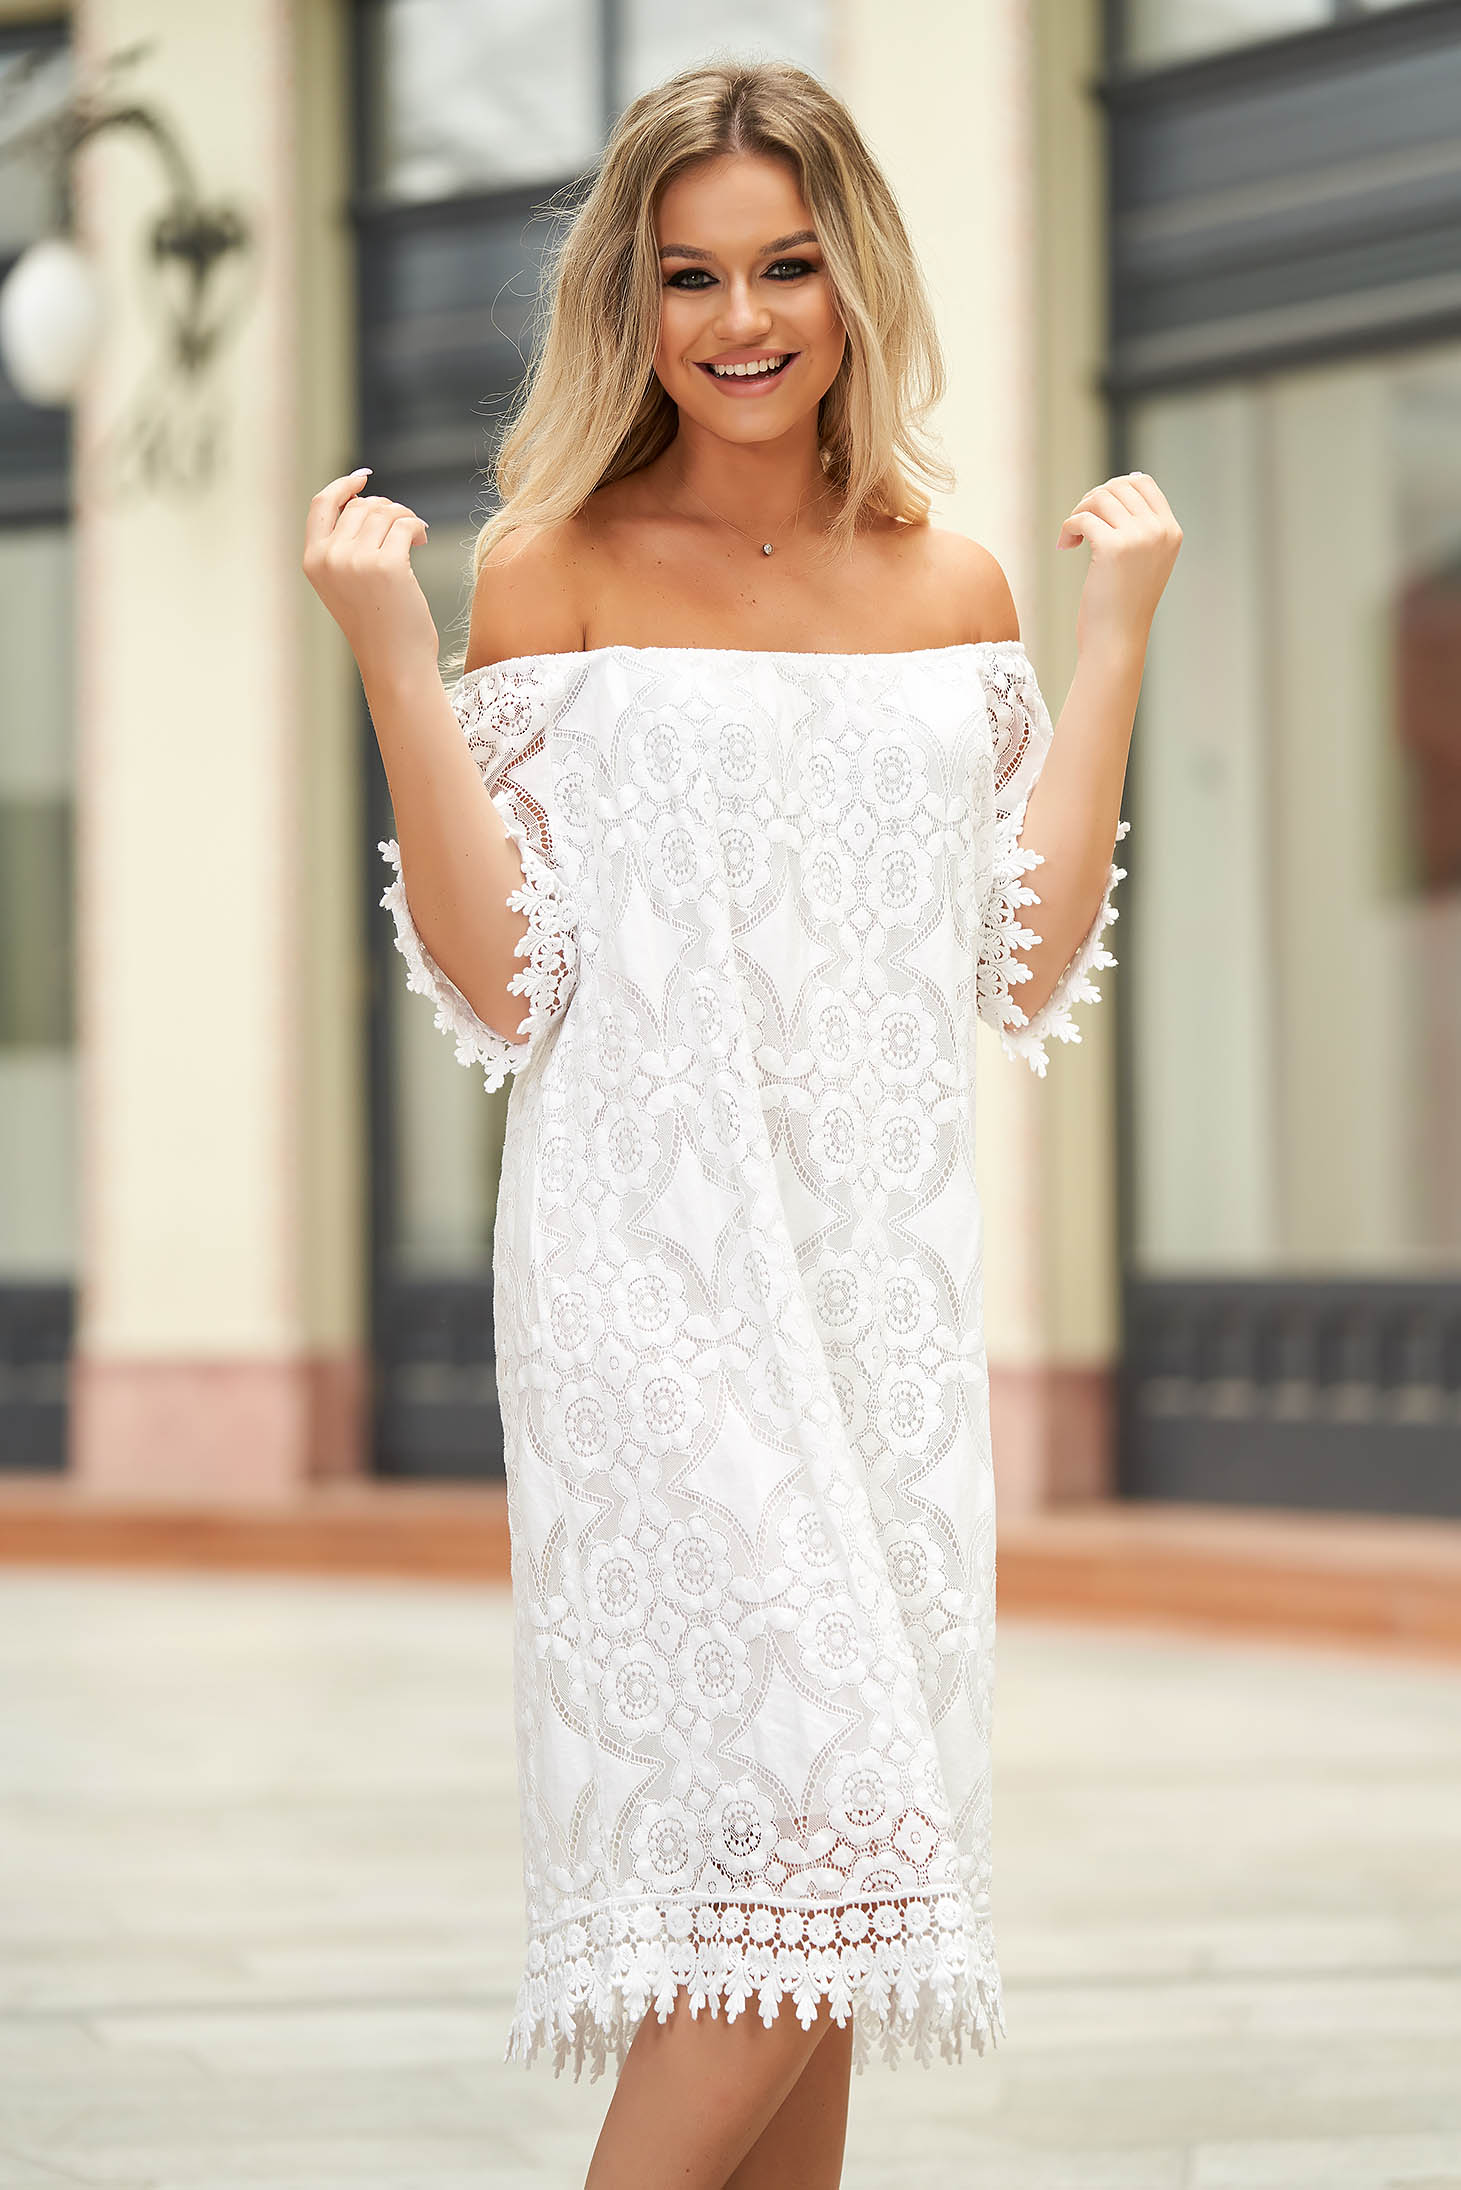 White dress short cut daily flared laced off-shoulder